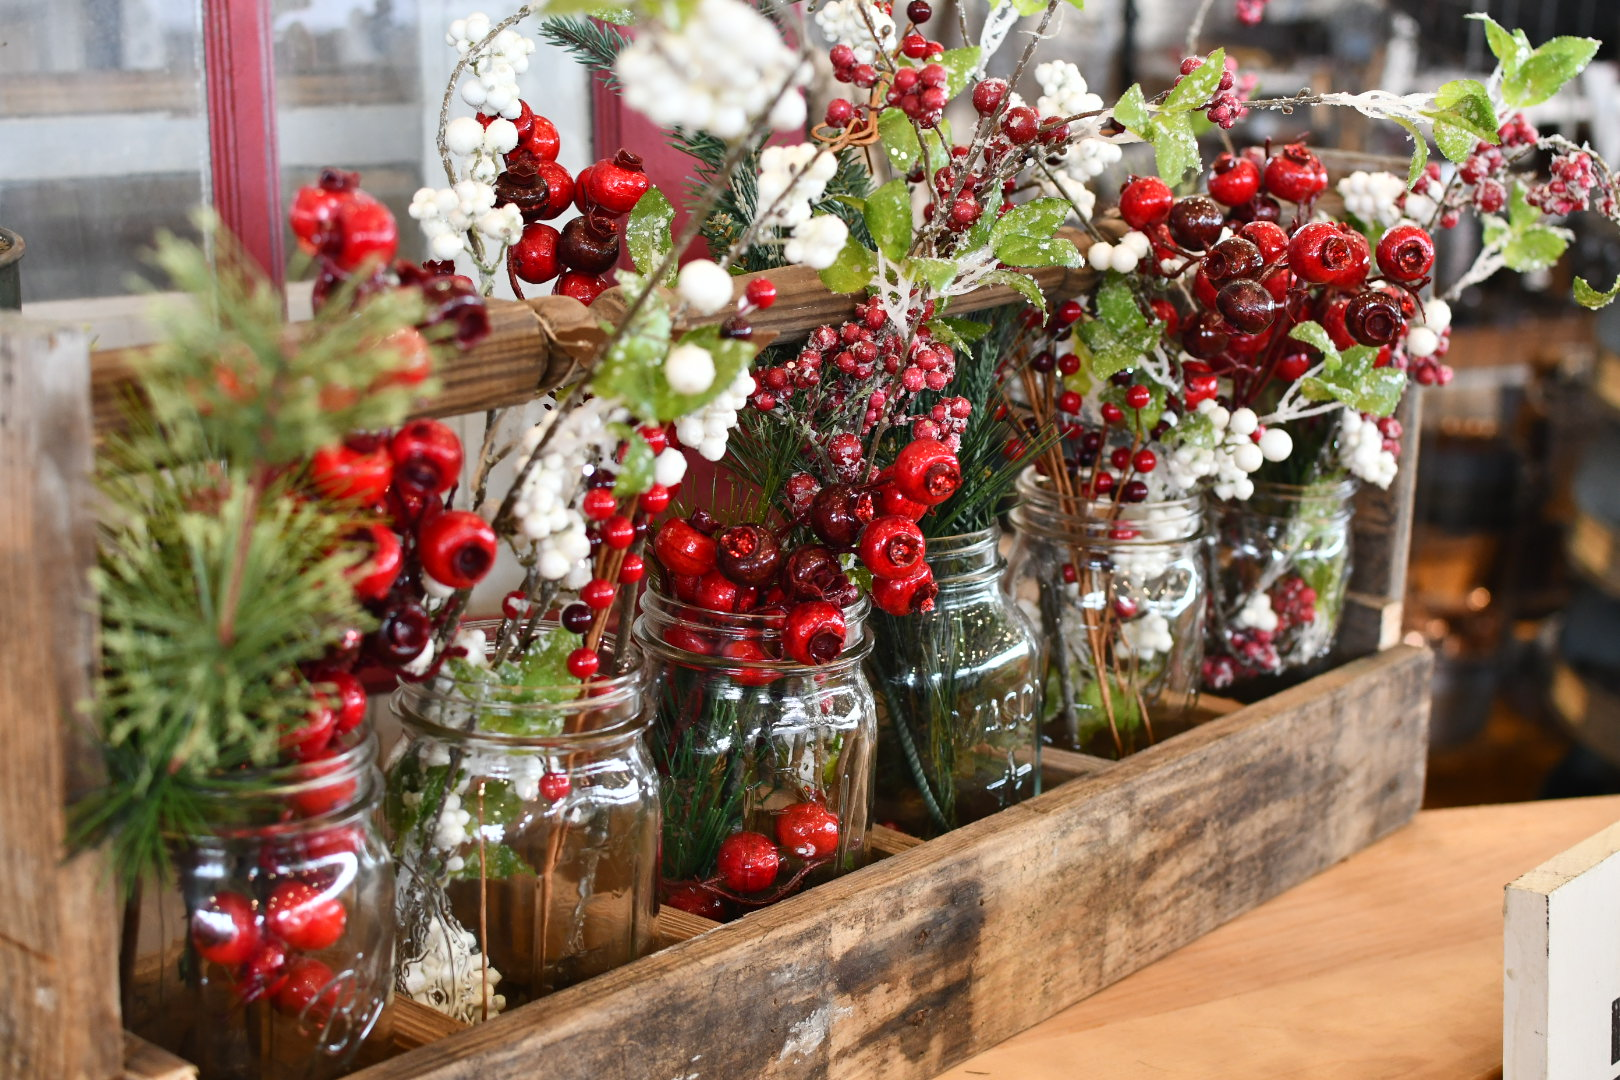 red and green Christmas table decor yanitza ninett photography